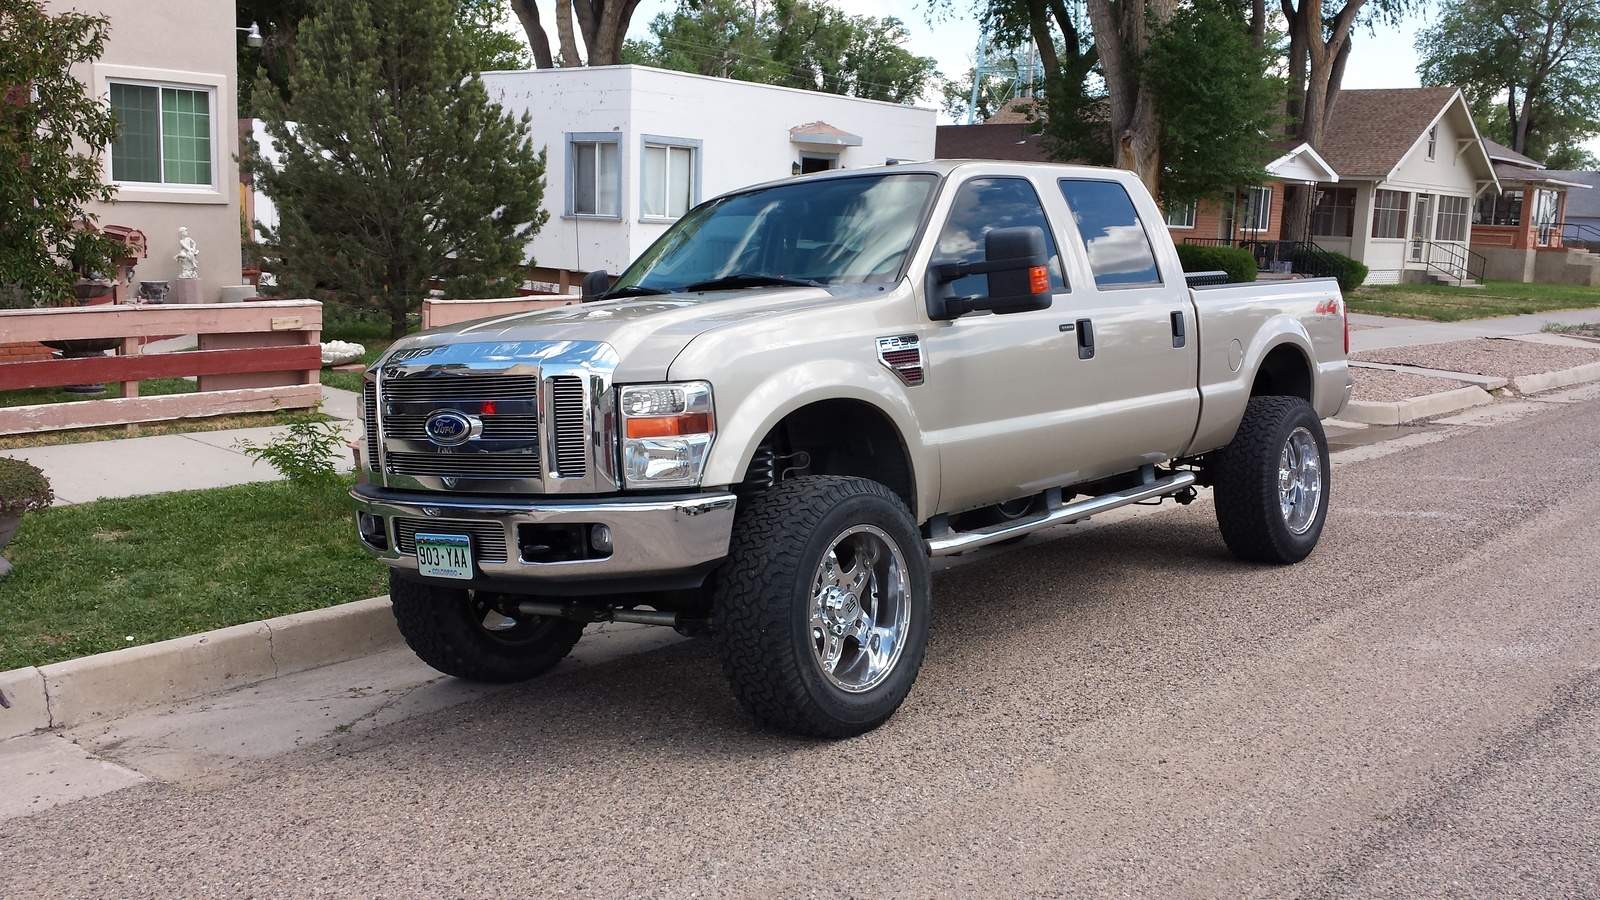 2010 Ford F 250 Crew Cab Fuse Box Diagram Simple Guide About Super Duty Wiring Sel U2022 For Free